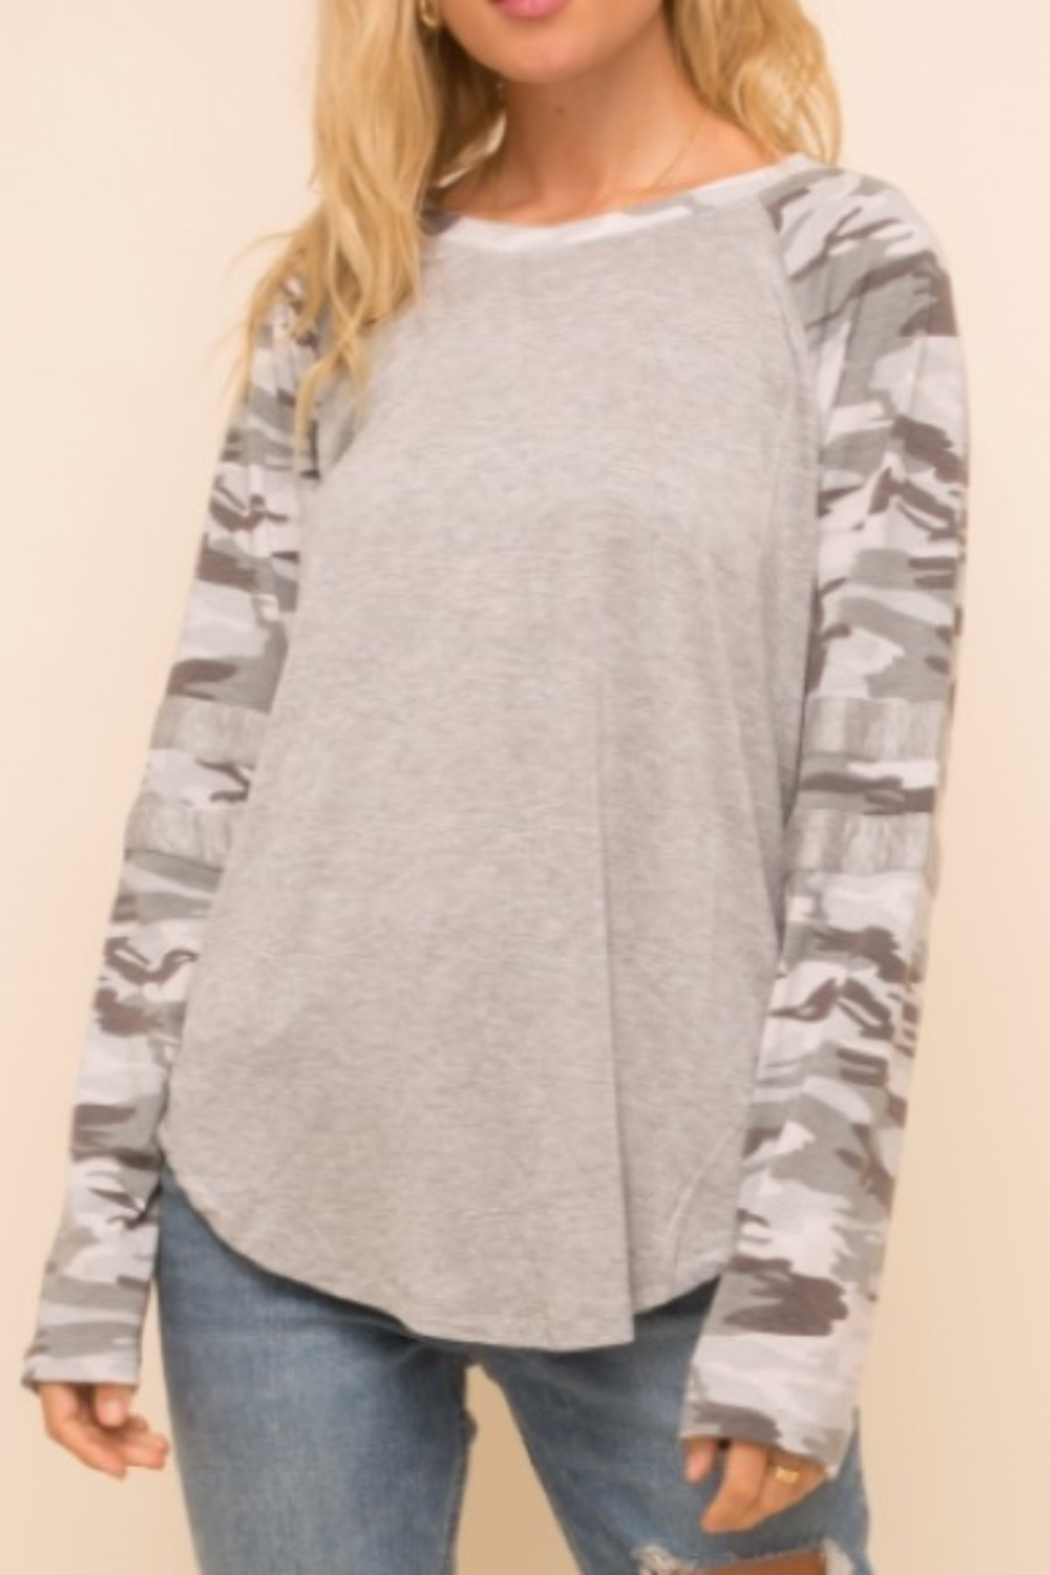 Hem & Thread Grey/ Multi Camo Raglan Sleeve Top - Main Image